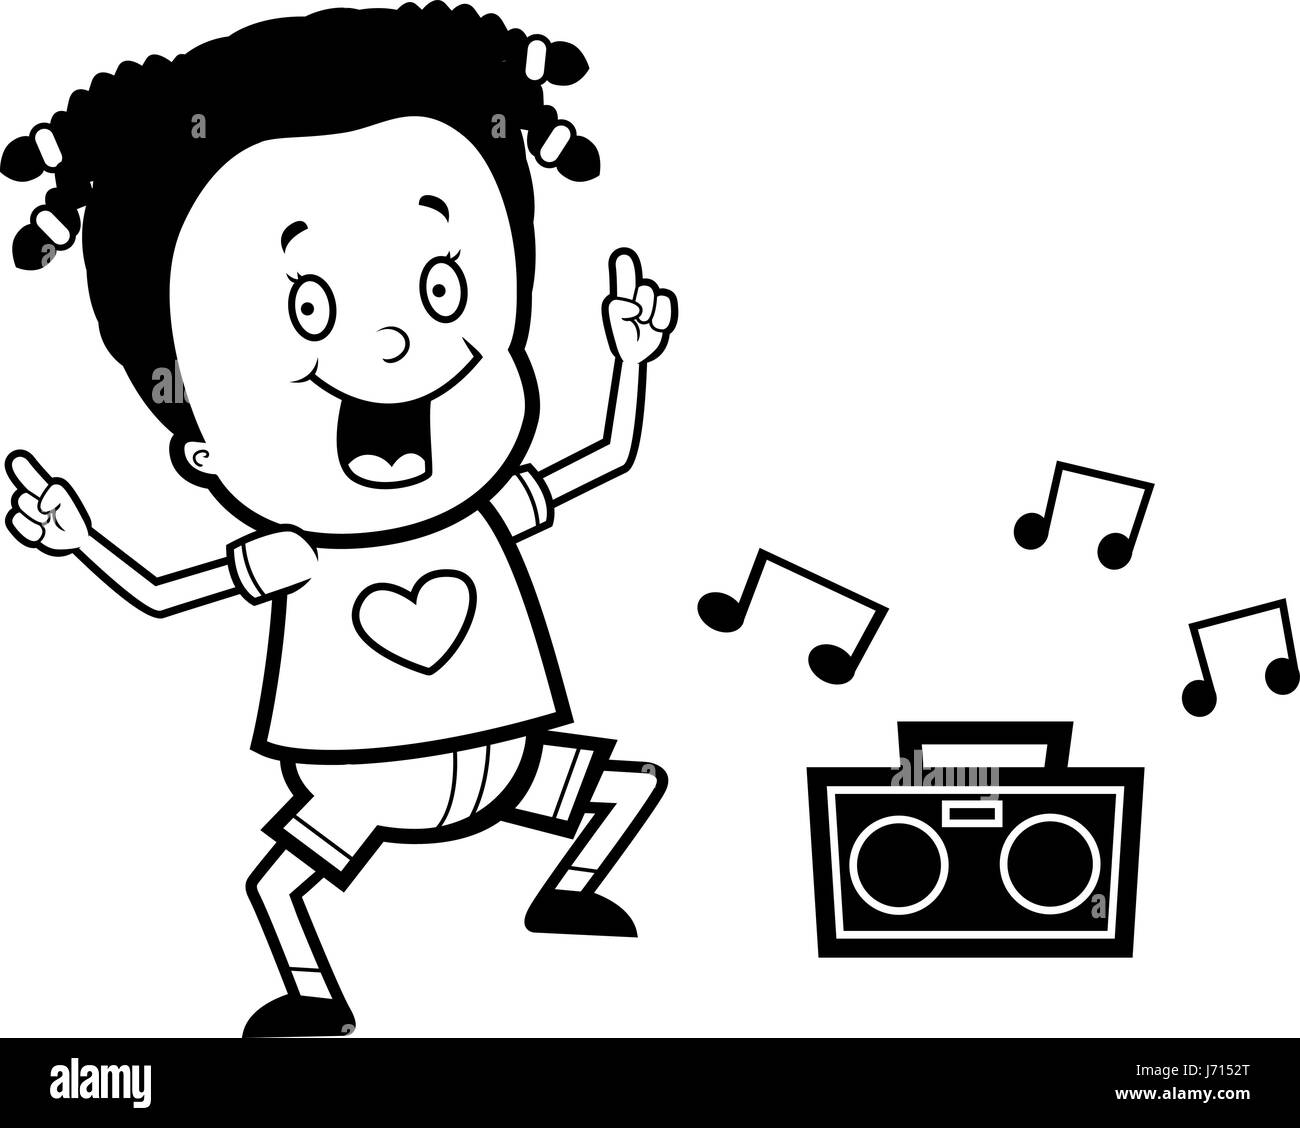 A Happy Cartoon Girl Dancing And Smiling Stock Vector Image Art Alamy